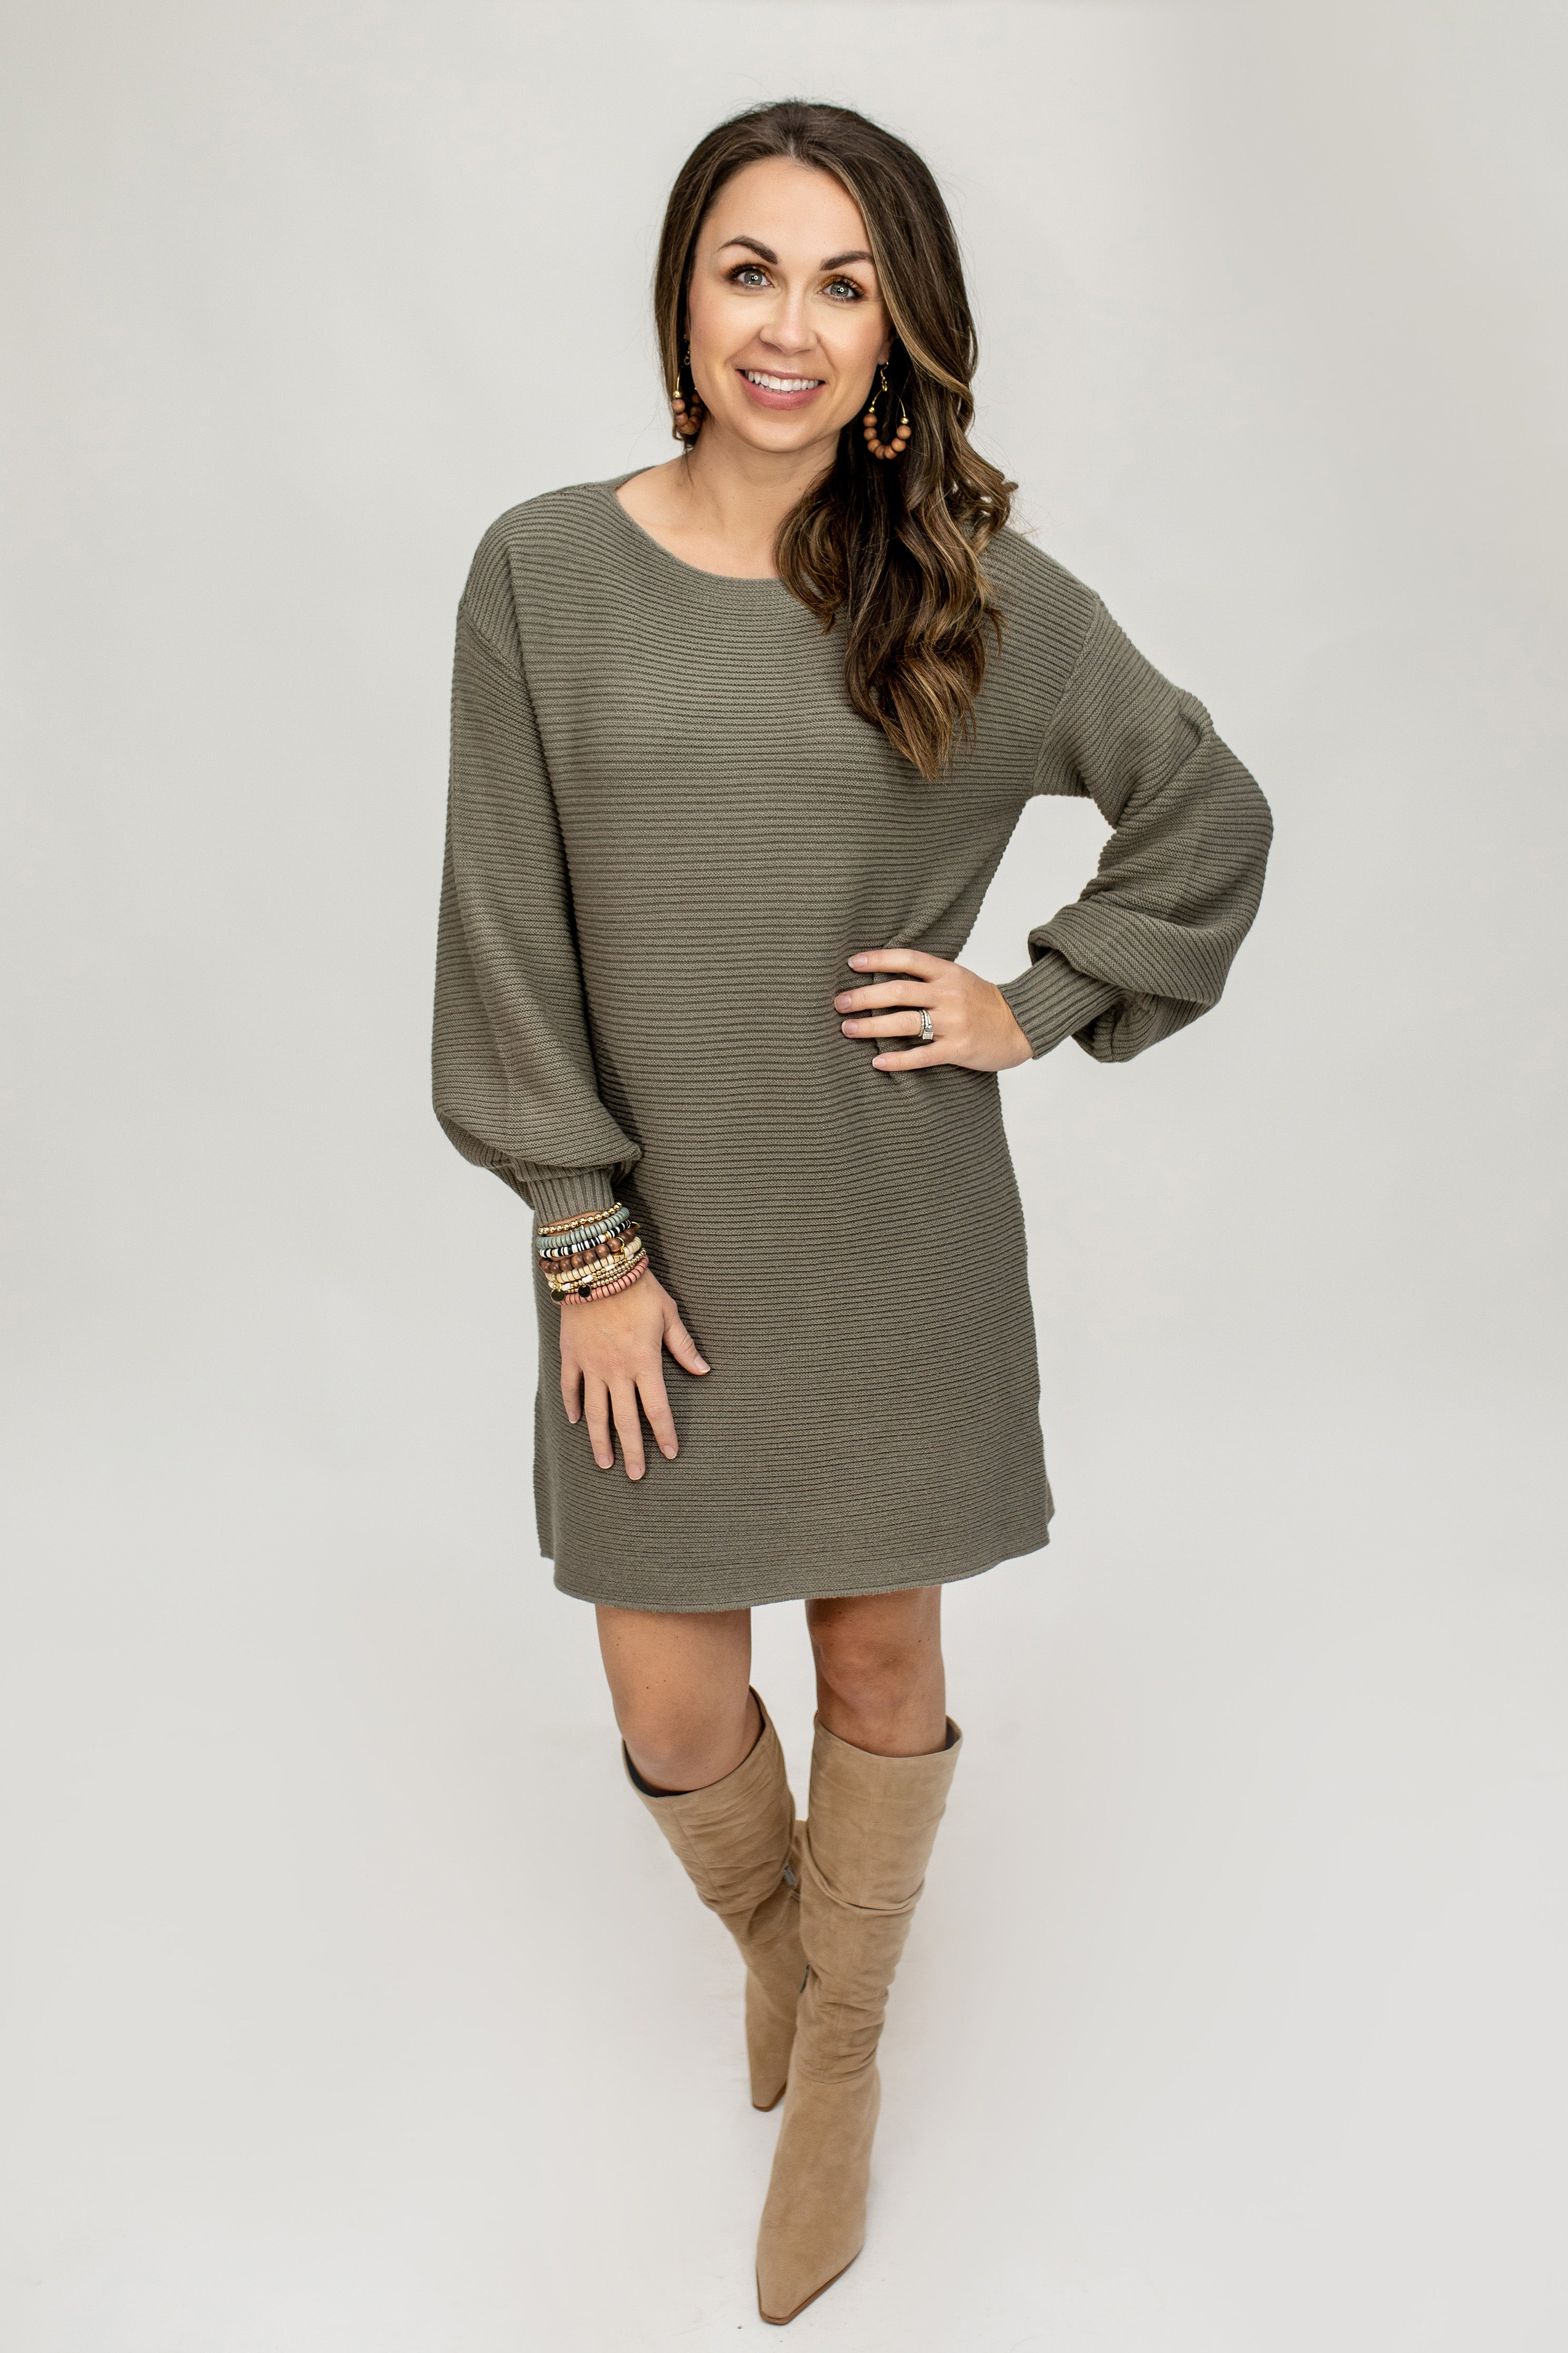 Olive Balloon Sleeve Ribbed Dress - VerClare Boutique